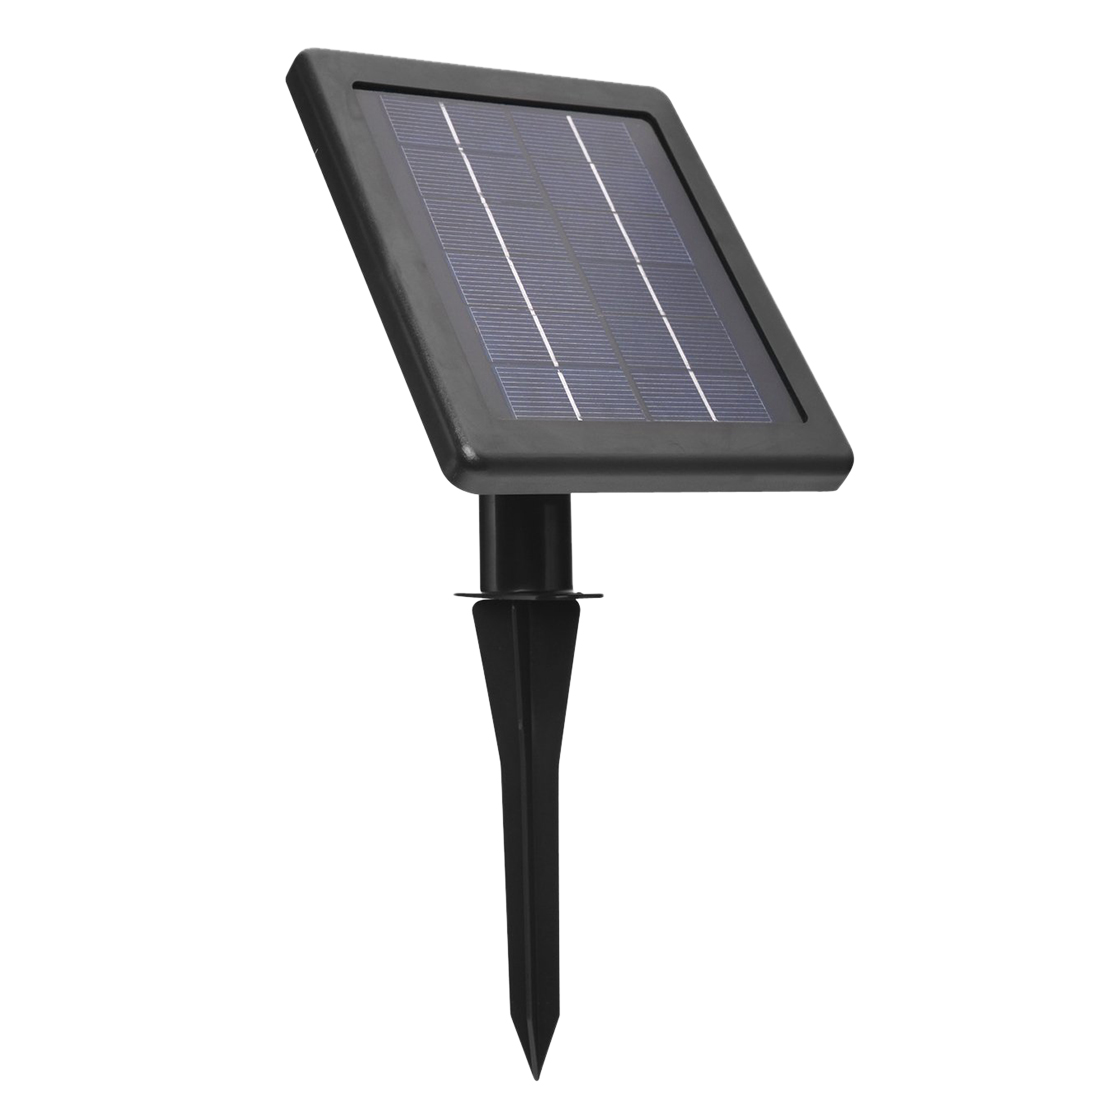 Rechargeable Waterproof Solar Powered 30 LED Spot Light White Lamp with Lithium Battery Inside for Lawn, Garden, Hotel, etc. youoklight 0 5w 3 led white light mini waterproof solar powered fence garden lamp black